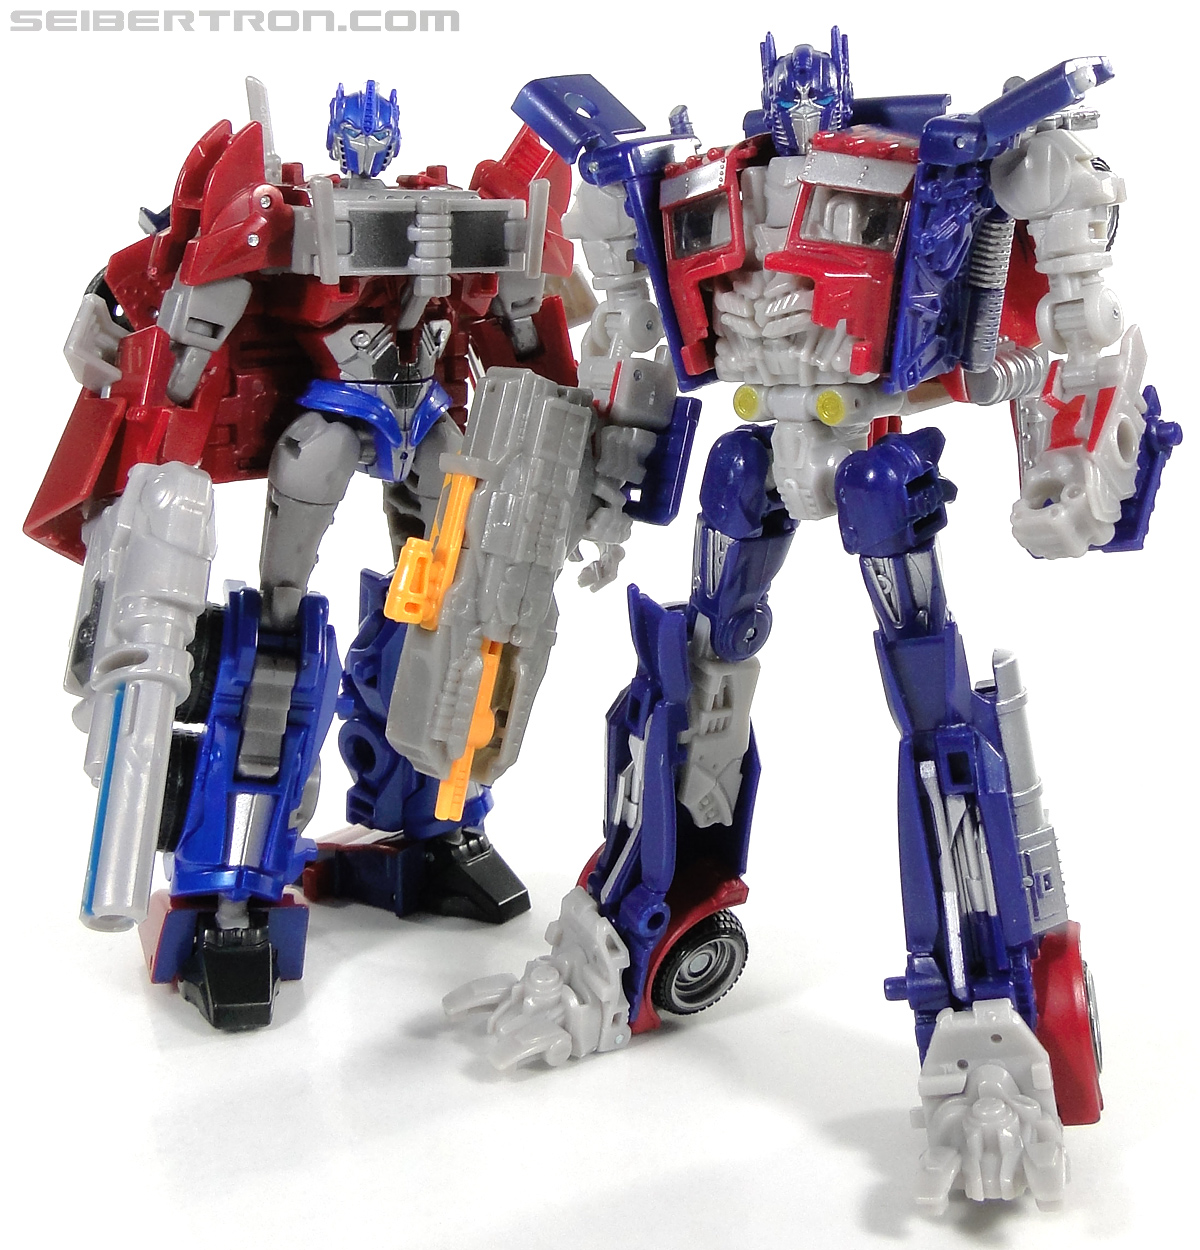 Transformers Dark of the Moon Optimus Prime (Image #129 of 145)